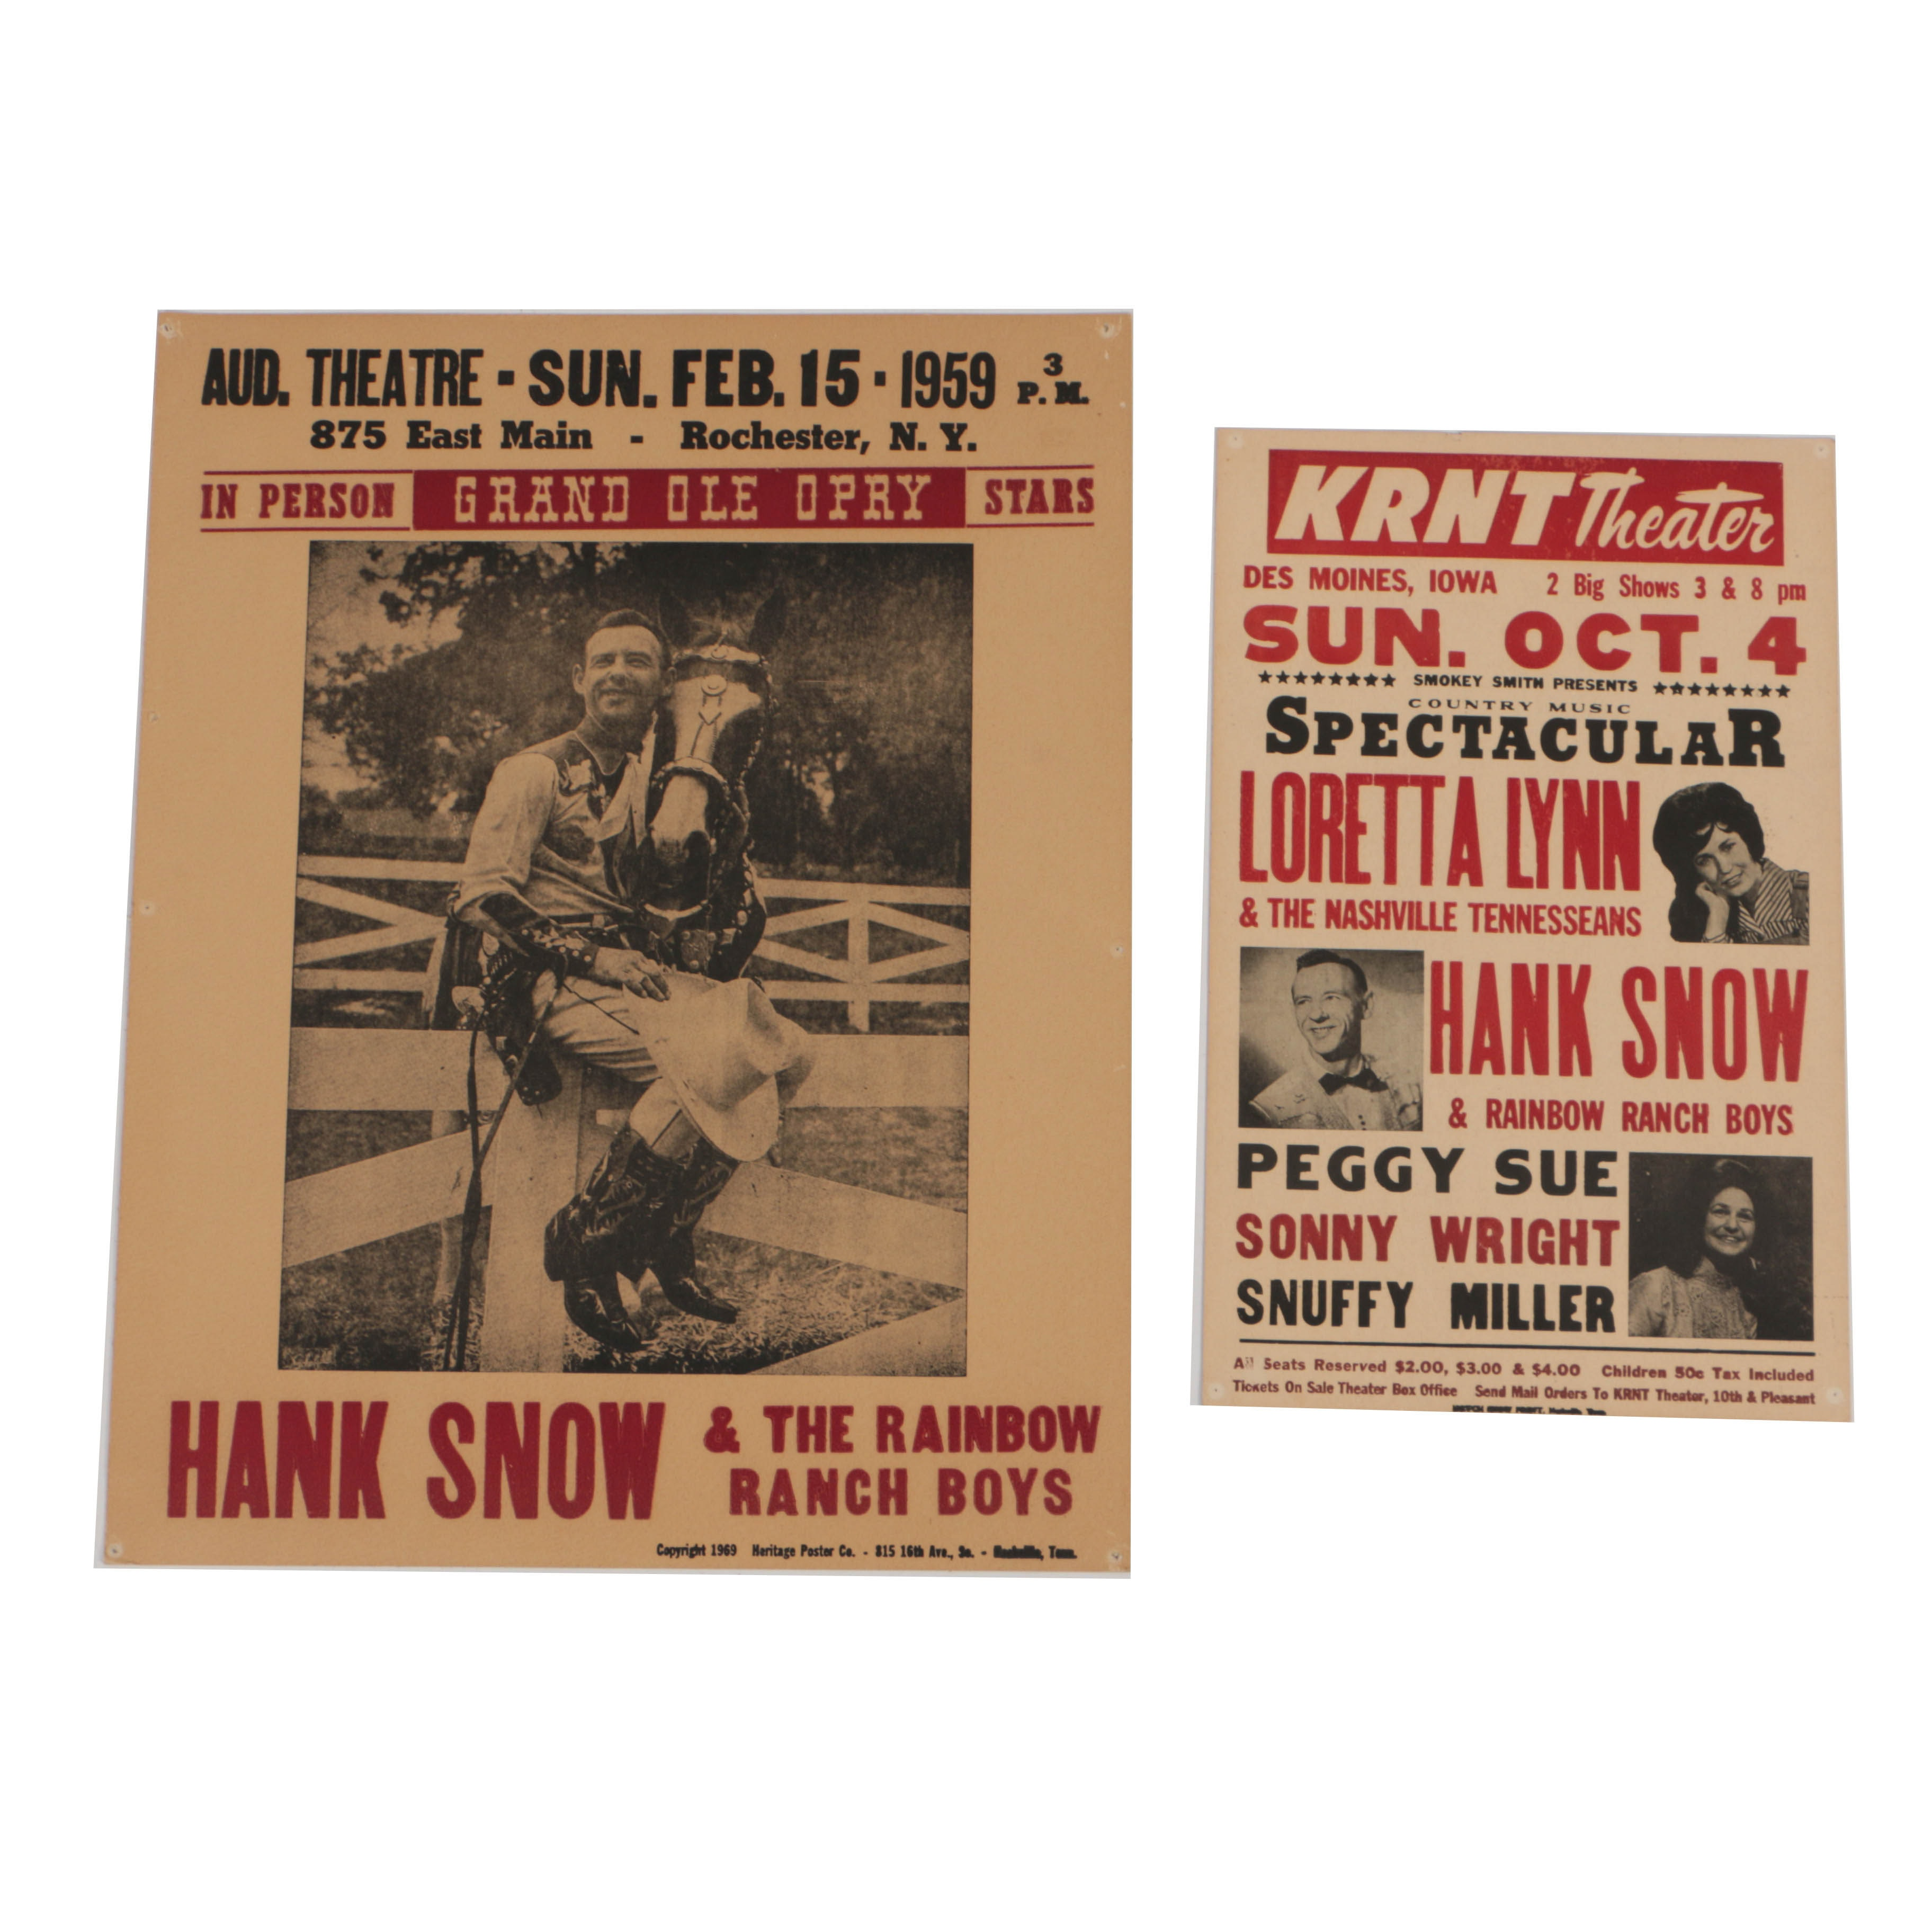 Hank Snow and Loretta Lyn Vintage Reproduction Concert Posters